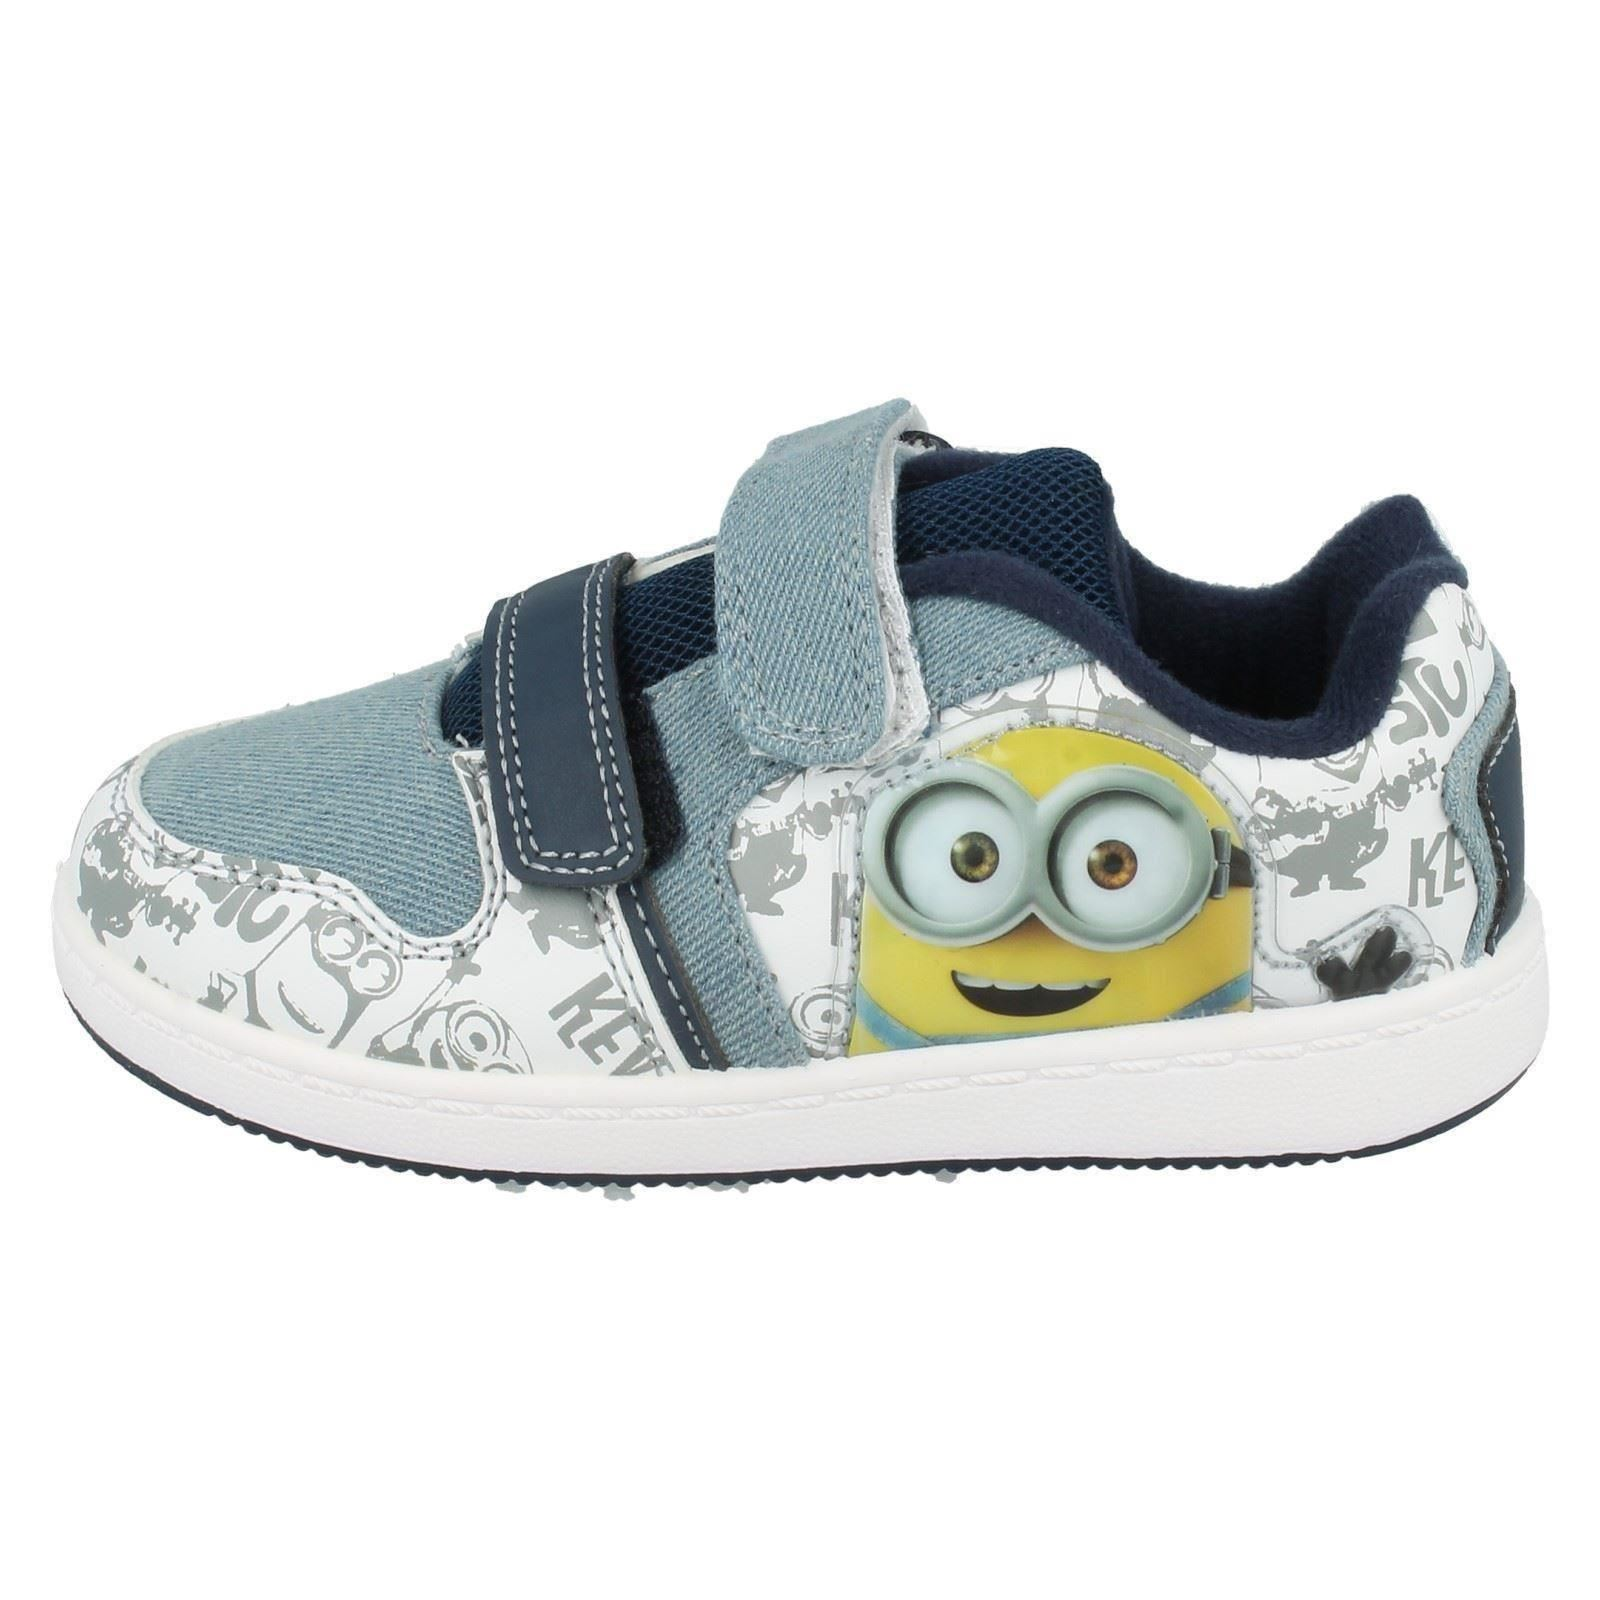 Boys Minions Trainers Weddell Skate